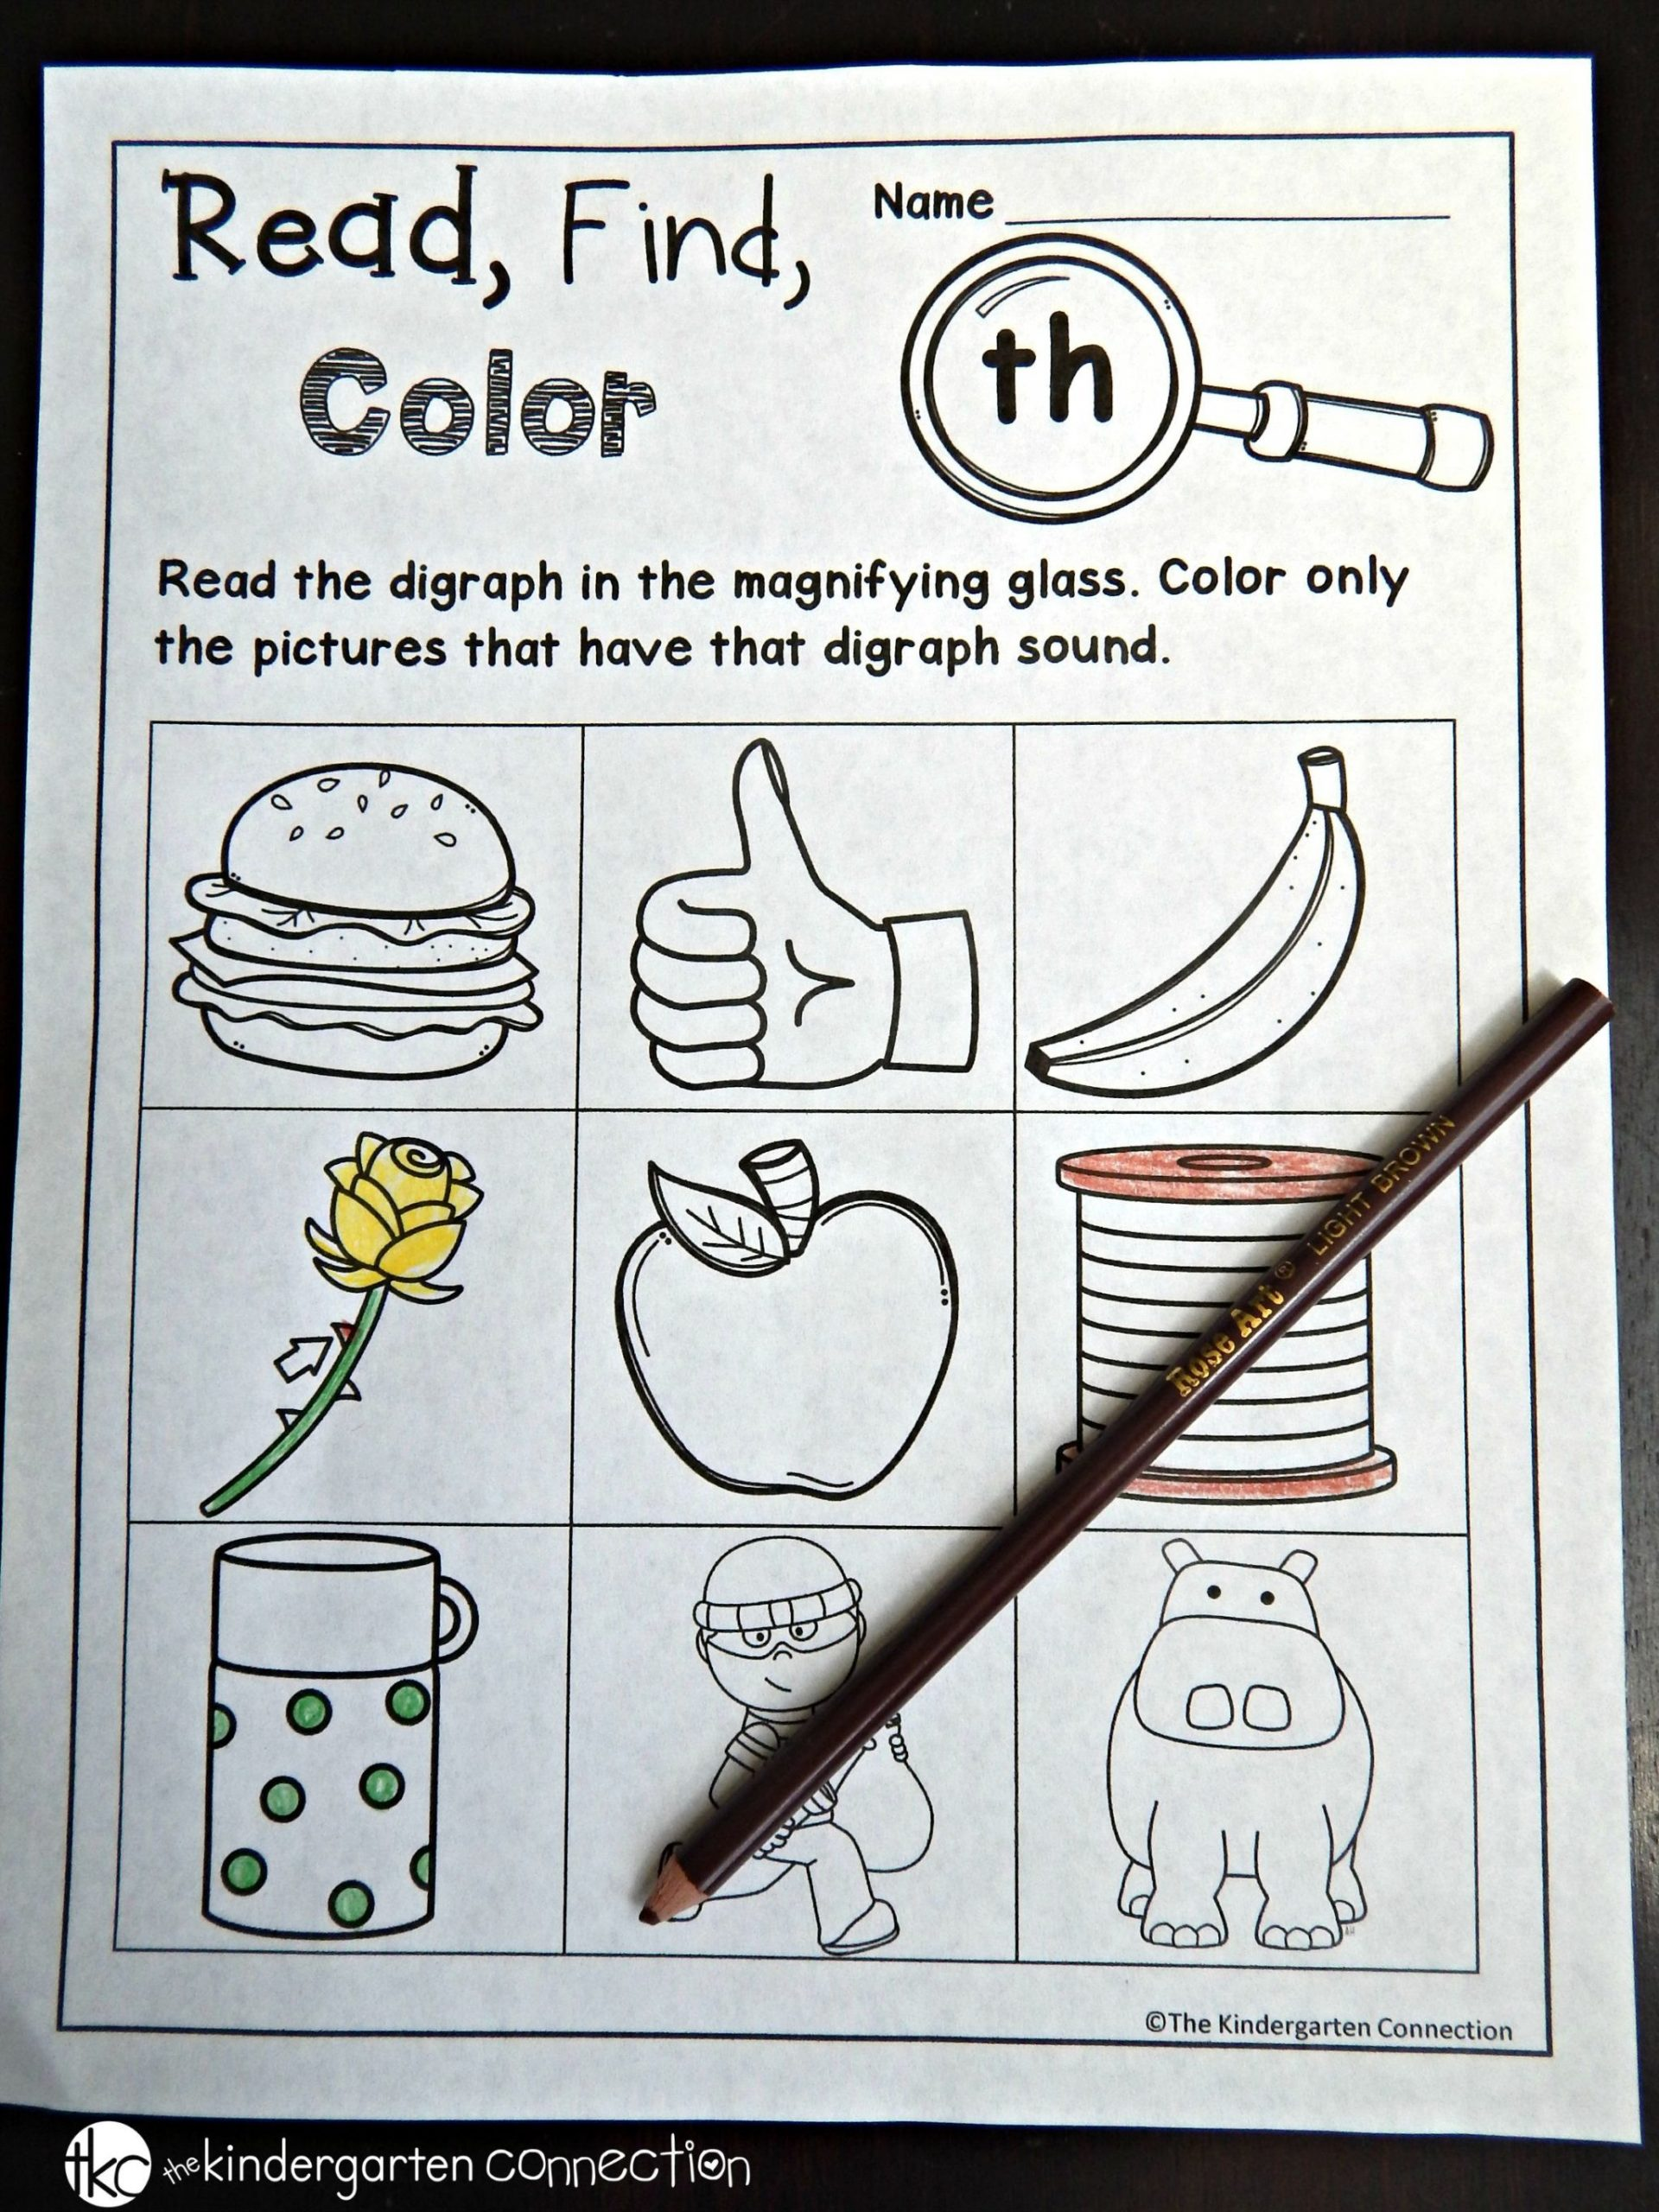 Wh Worksheets for Kindergarten Free Digraph and Cvce Printables the Kindergarten Connection